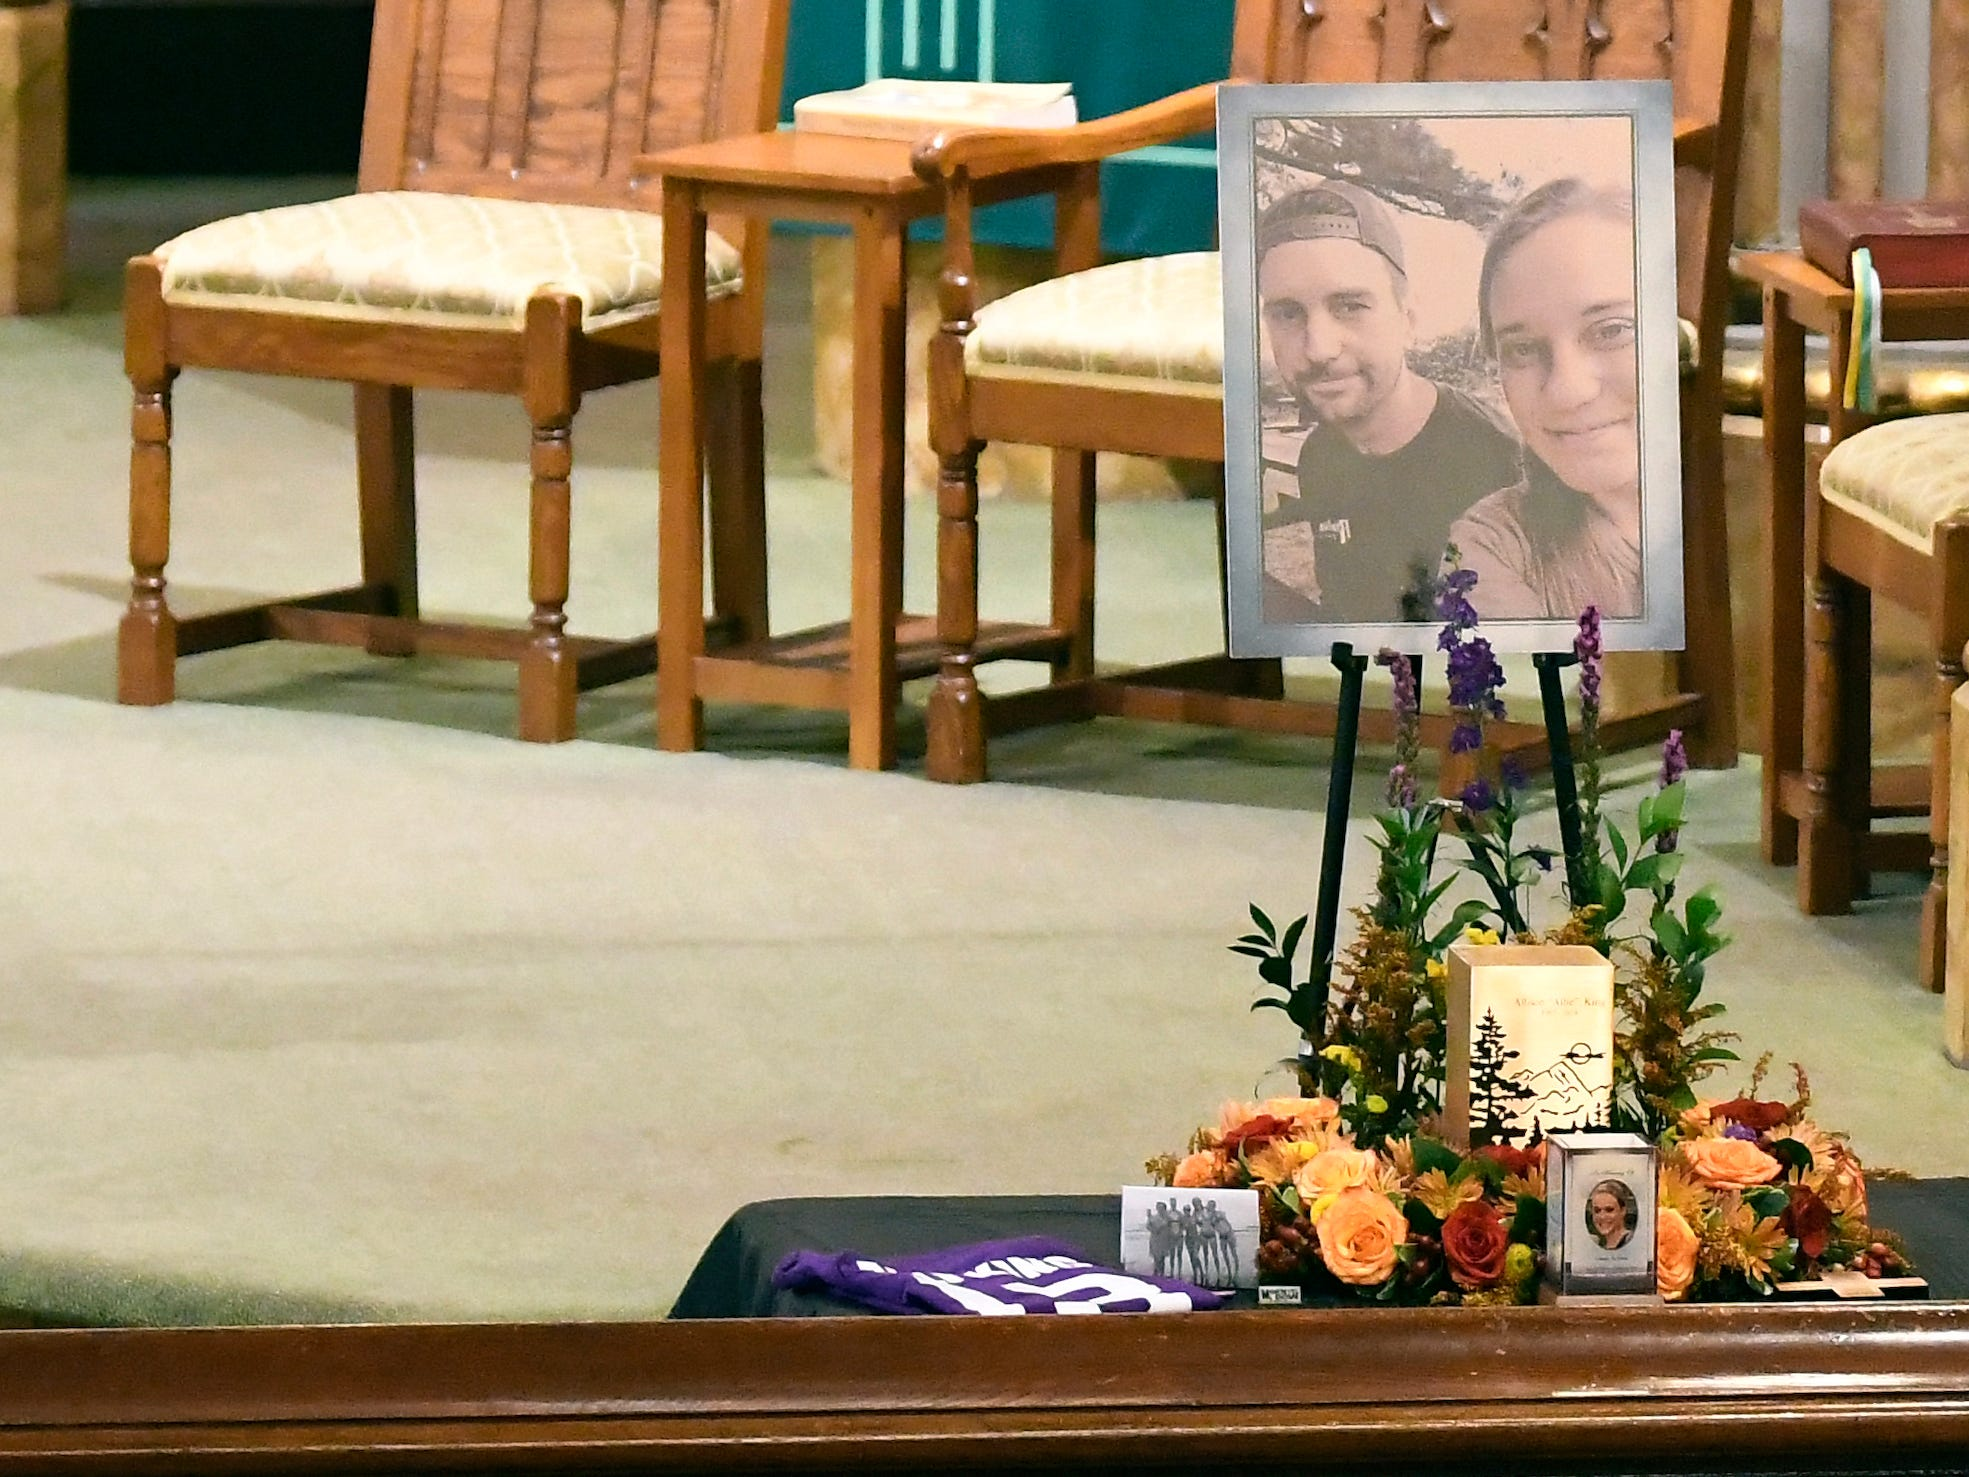 A urn with cremated ashes of Allison King is set in place as friends and family prepare for a funeral mass at St. Stanislaus Roman Catholic Church in Amsterdam, N.Y., for eight of the 20 people killed in last Saturday's fatal limousine crash in Schoharie, N.Y., Saturday, Oct. 13, 2018. (AP Photo/Hans Pennink)